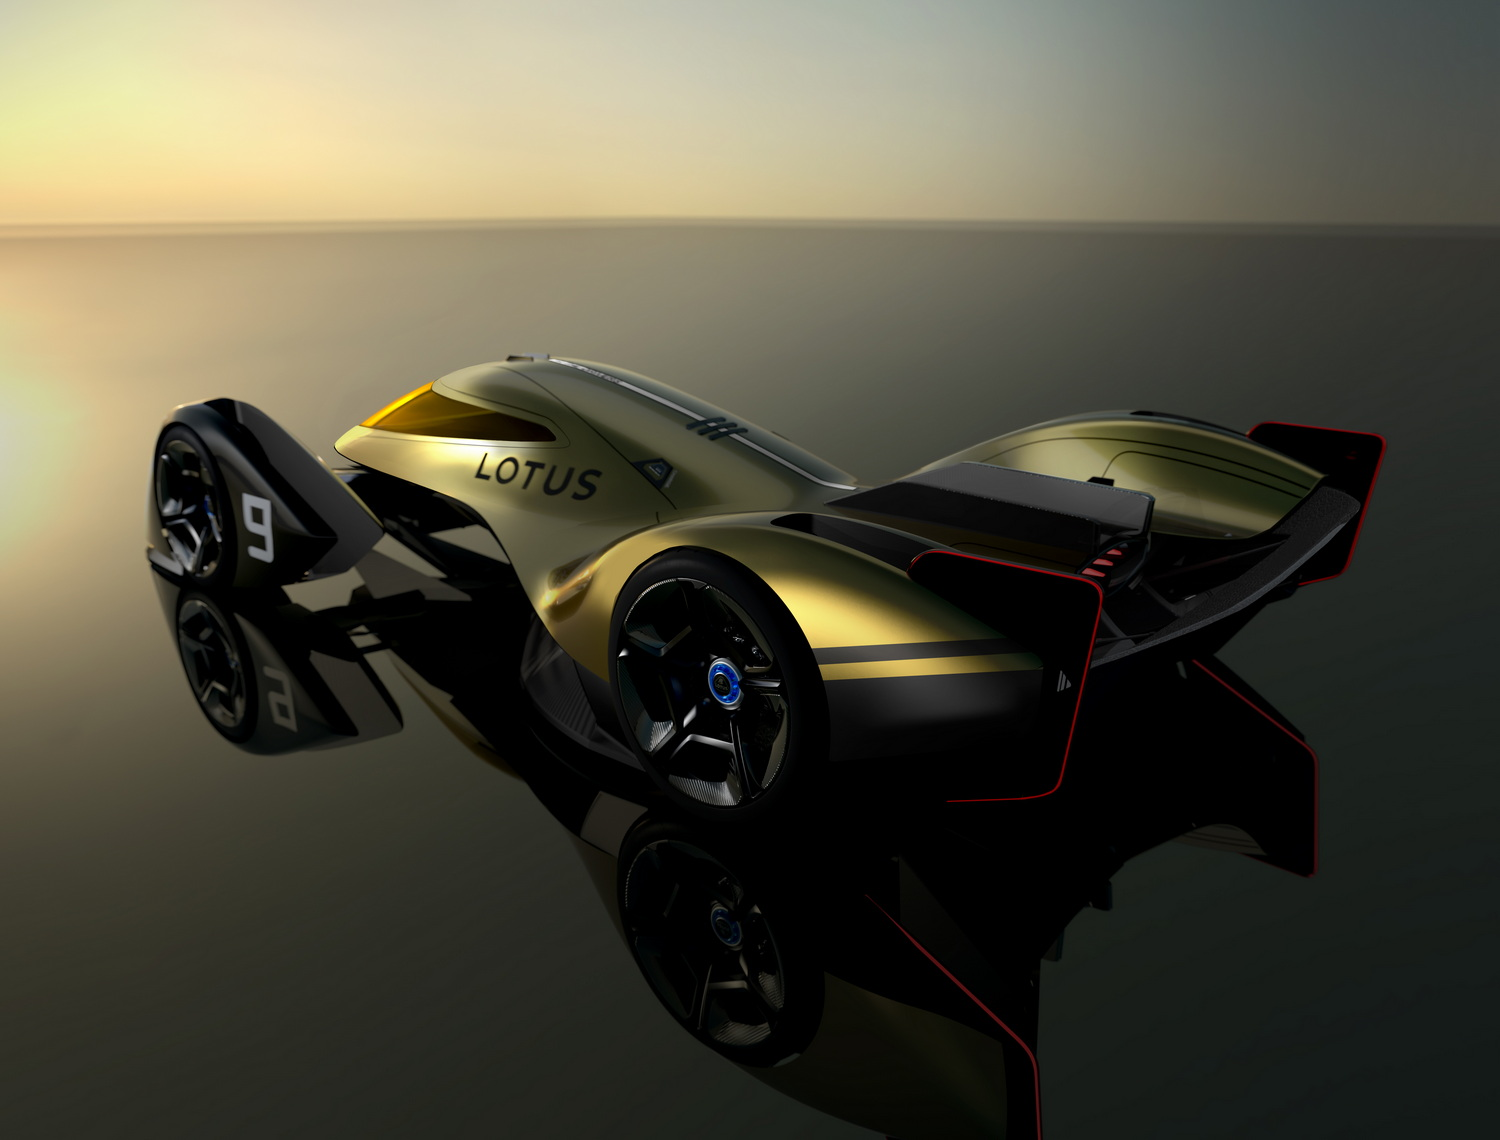 Lotus previews enduro-racer of the future. Image by Lotus.